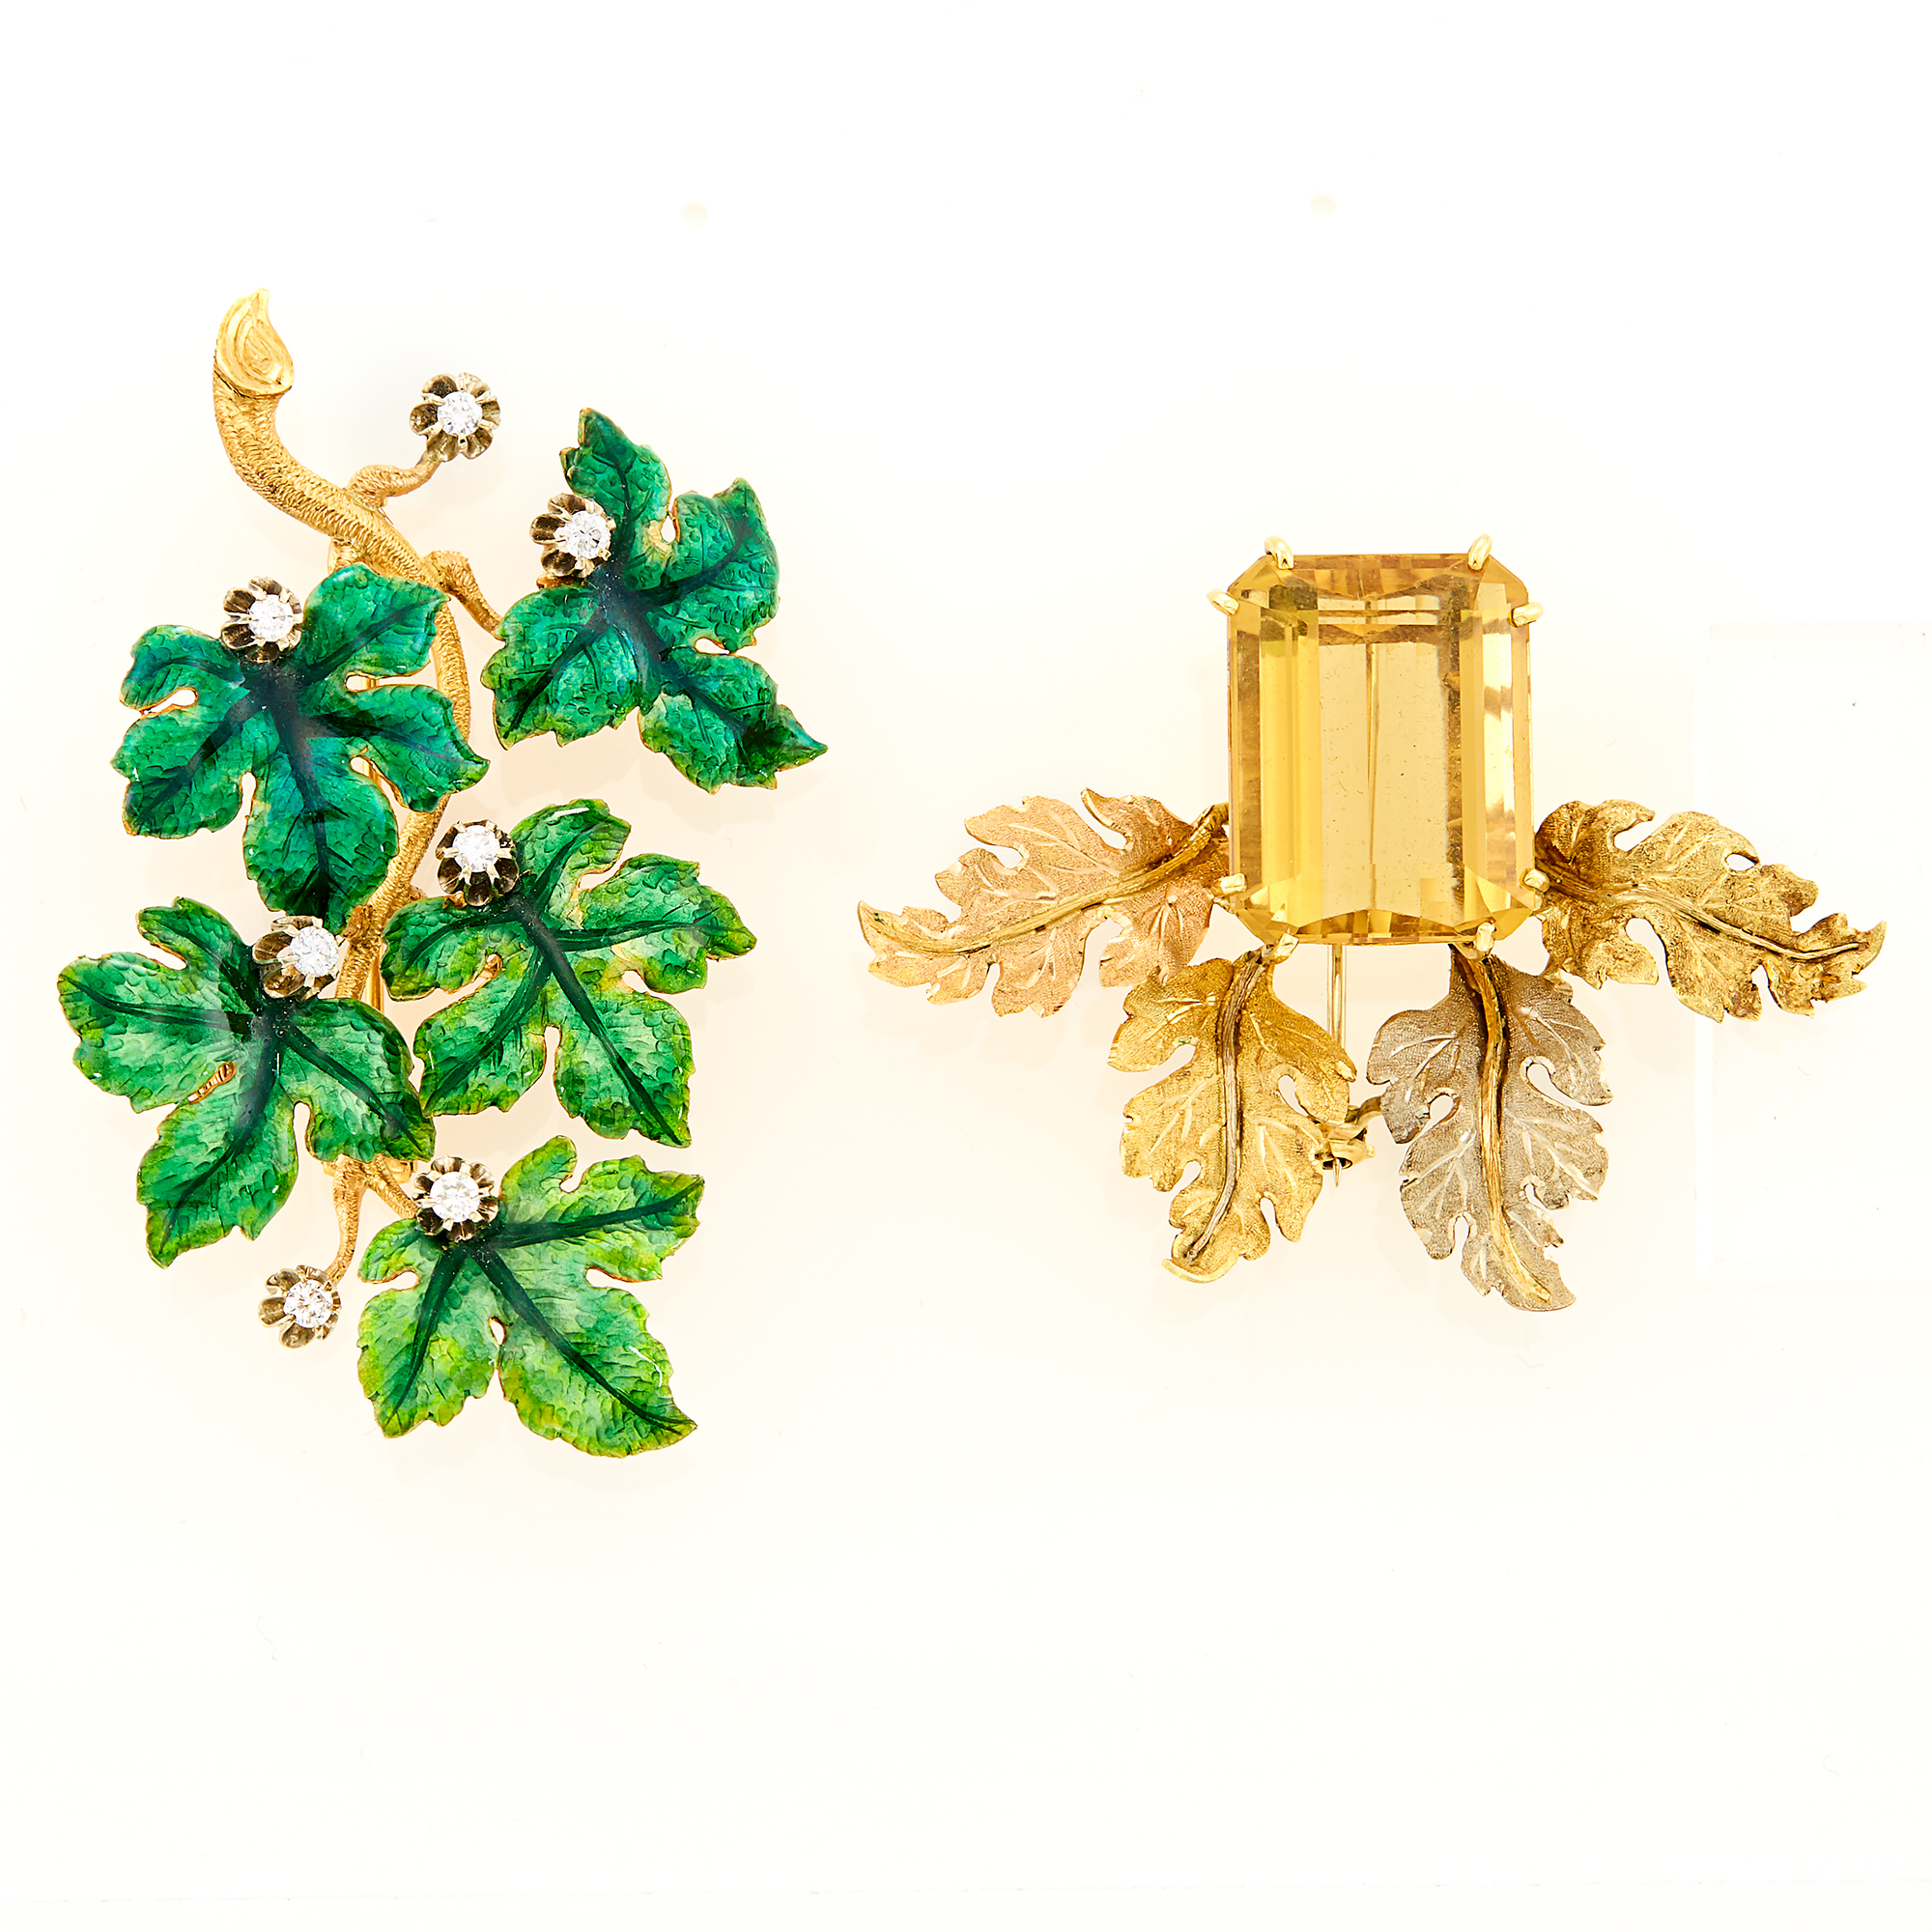 Lot image - Gold, Silver, Enamel and Diamond En Tremblant Leaf Brooch and Tricolor Gold and Citrine Leaf Brooch